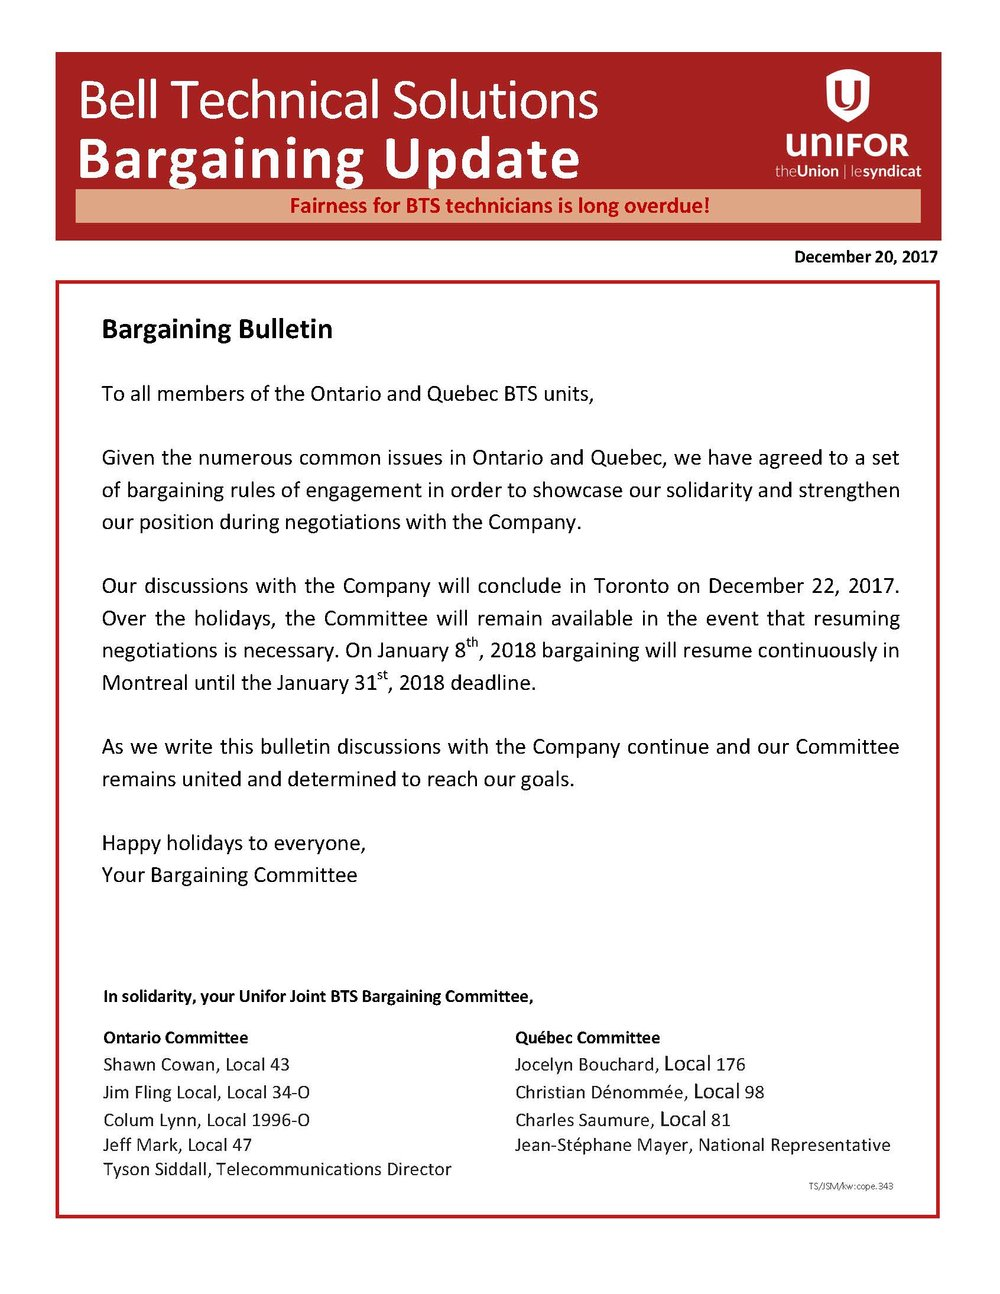 BTS - Bargaining Update Dec 20, 2018.jpg